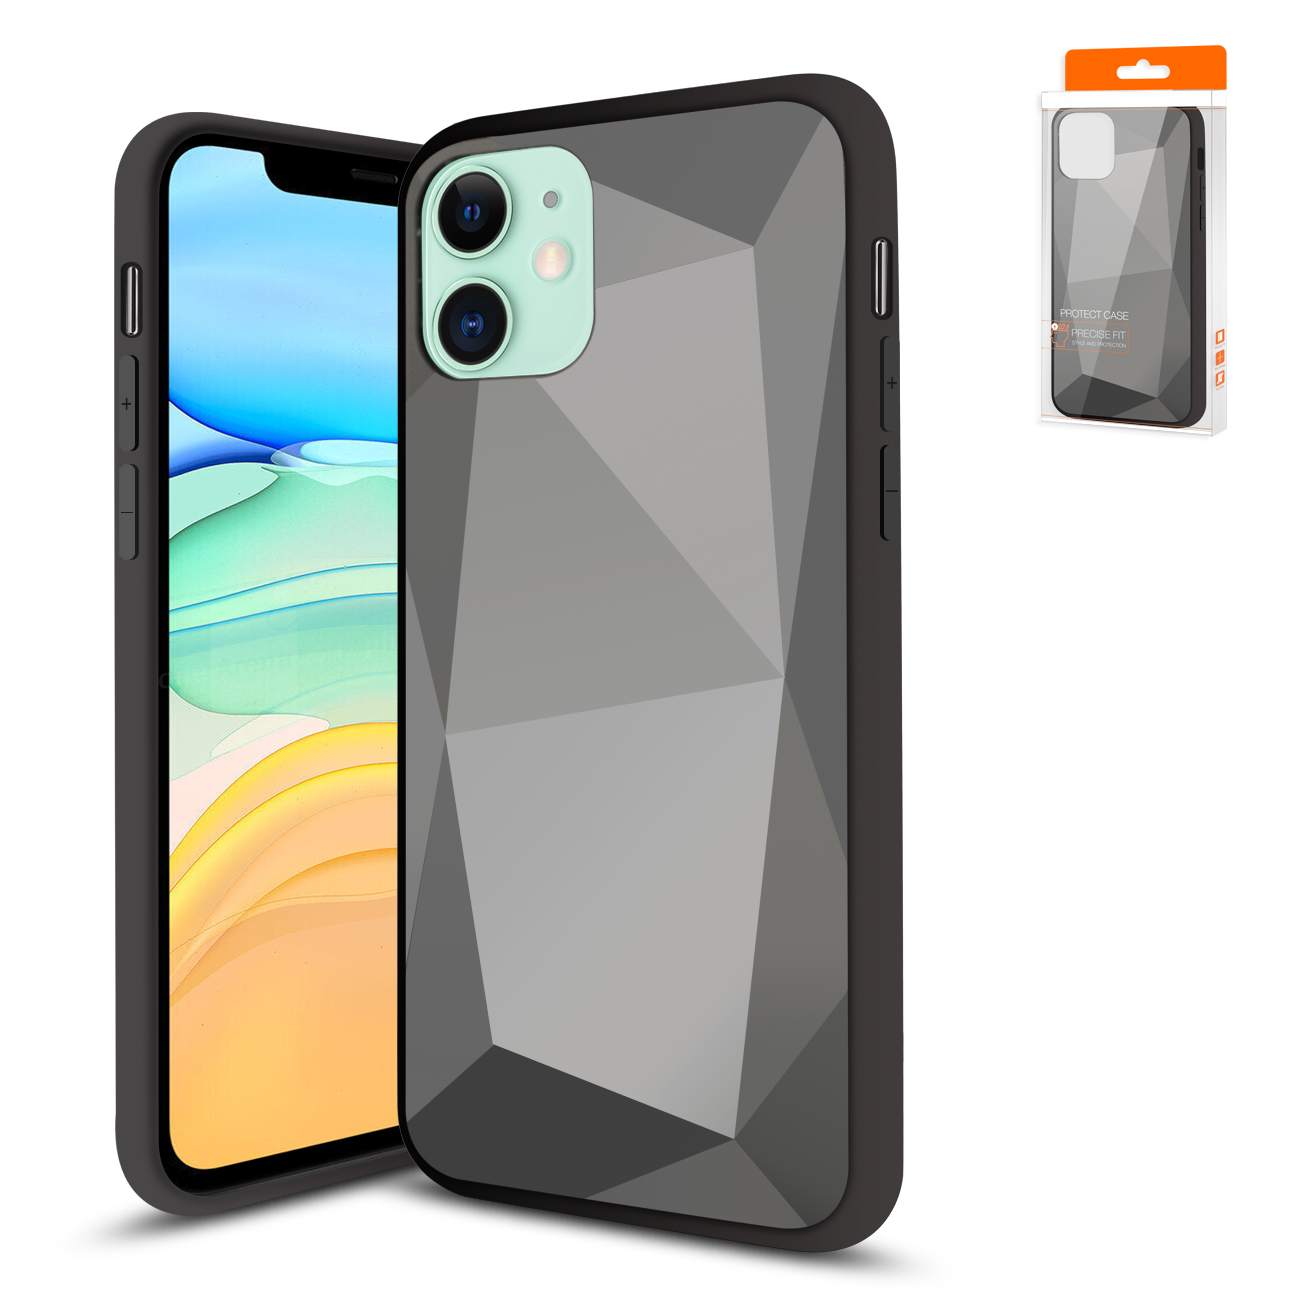 Apple iPhone 11 Apple Diamond Cases In Black